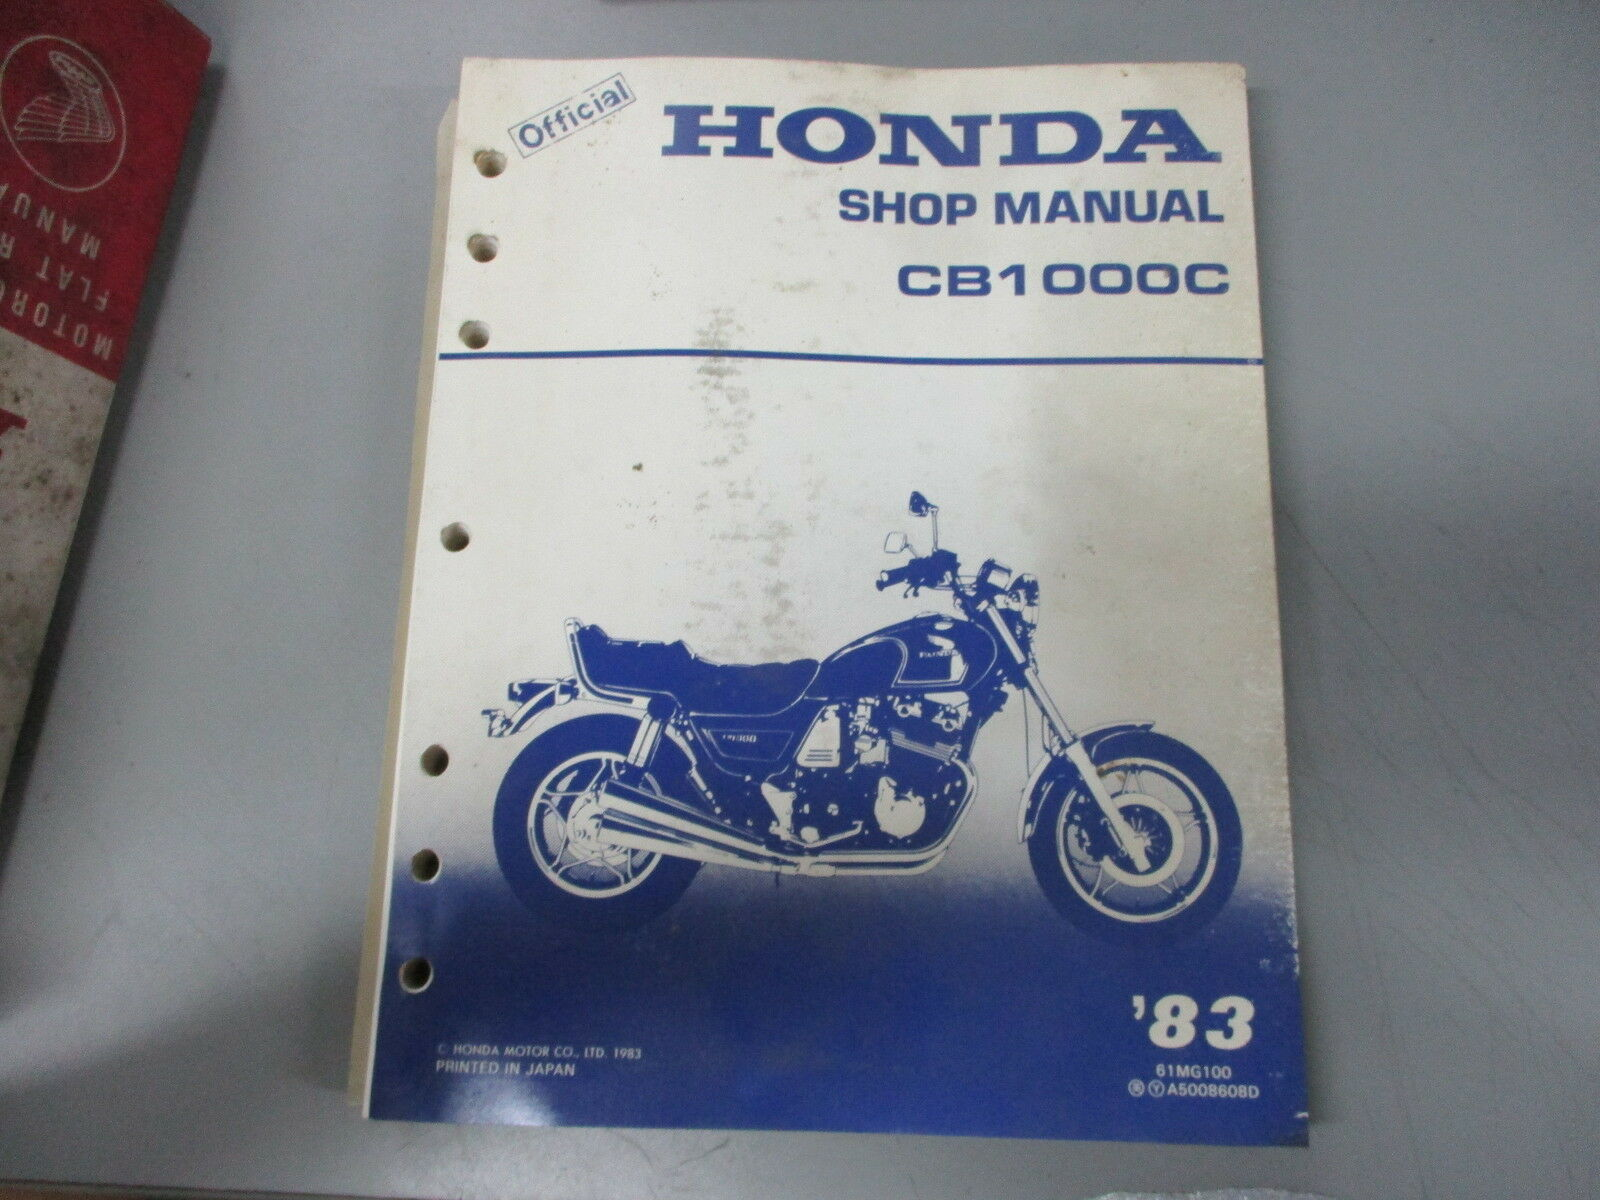 Honda OEM Shop Service Manual 1983 CB1000C CB1000 CB 1000 C 1 of 3Only 2  available See More